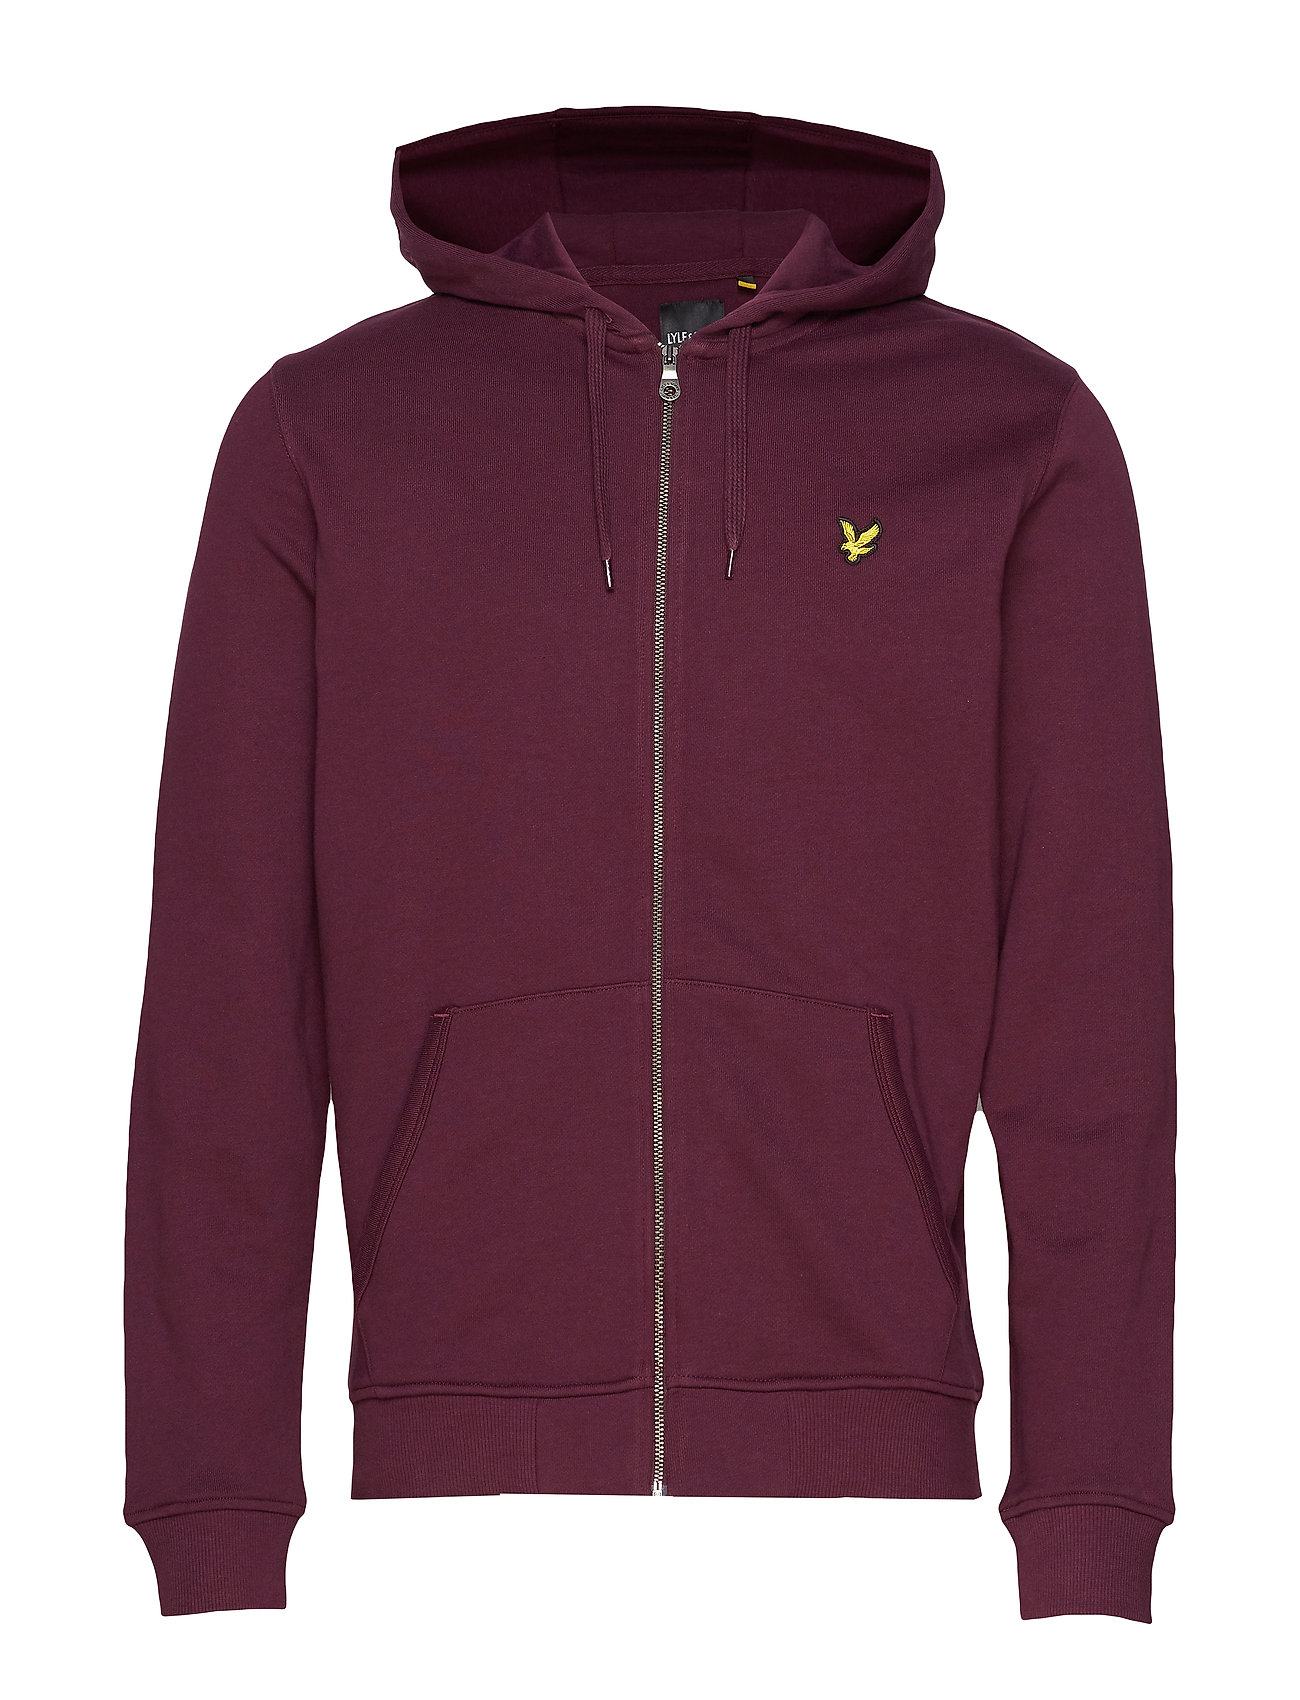 Lyle & Scott Zip Through Hoodie - BURGUNDY